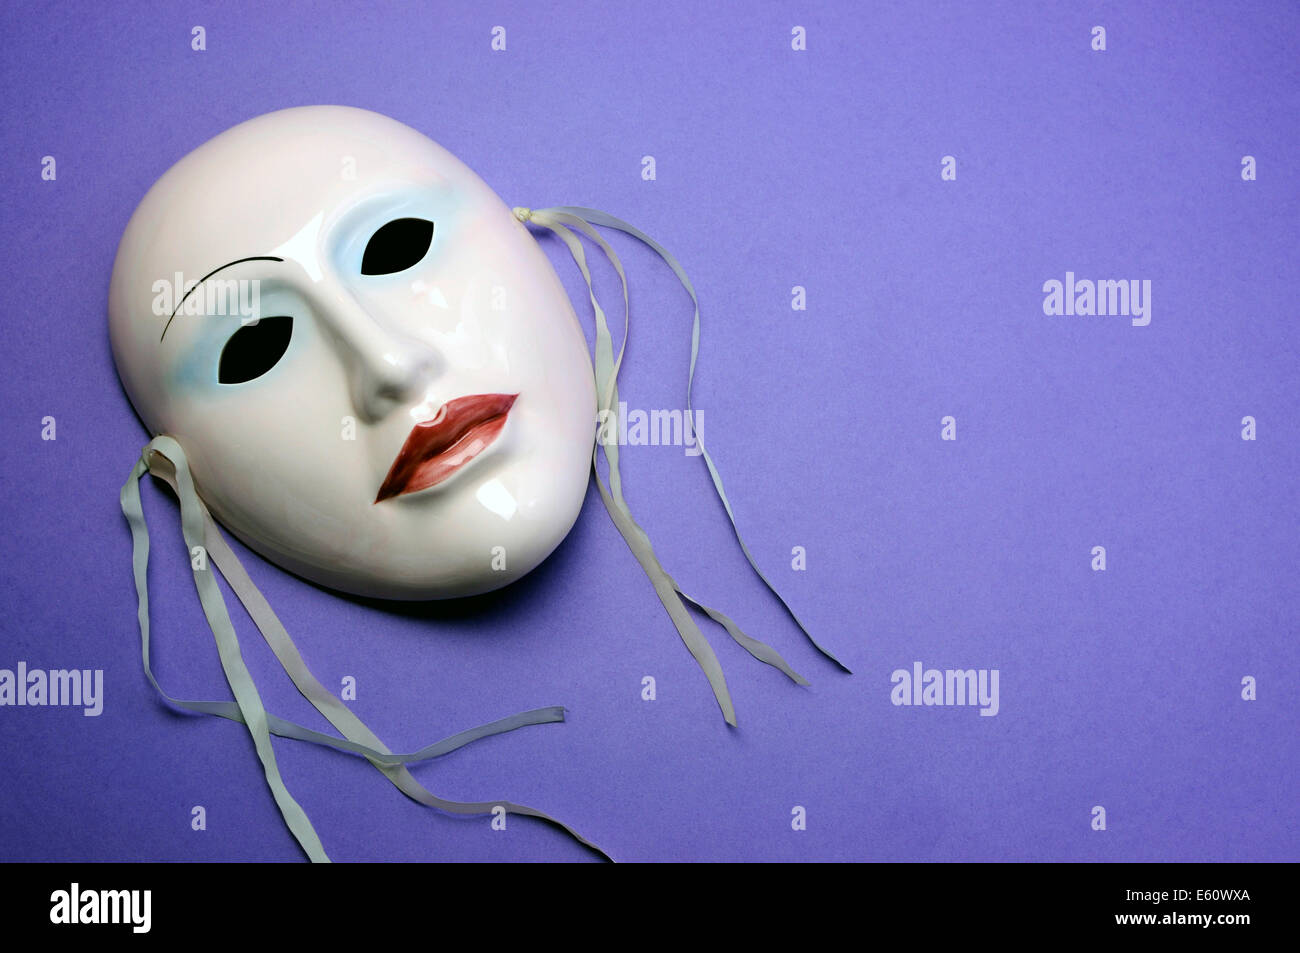 Pale pink ceramic mask on purple background for actor, performance or theater concept with copy space for your text - Stock Image